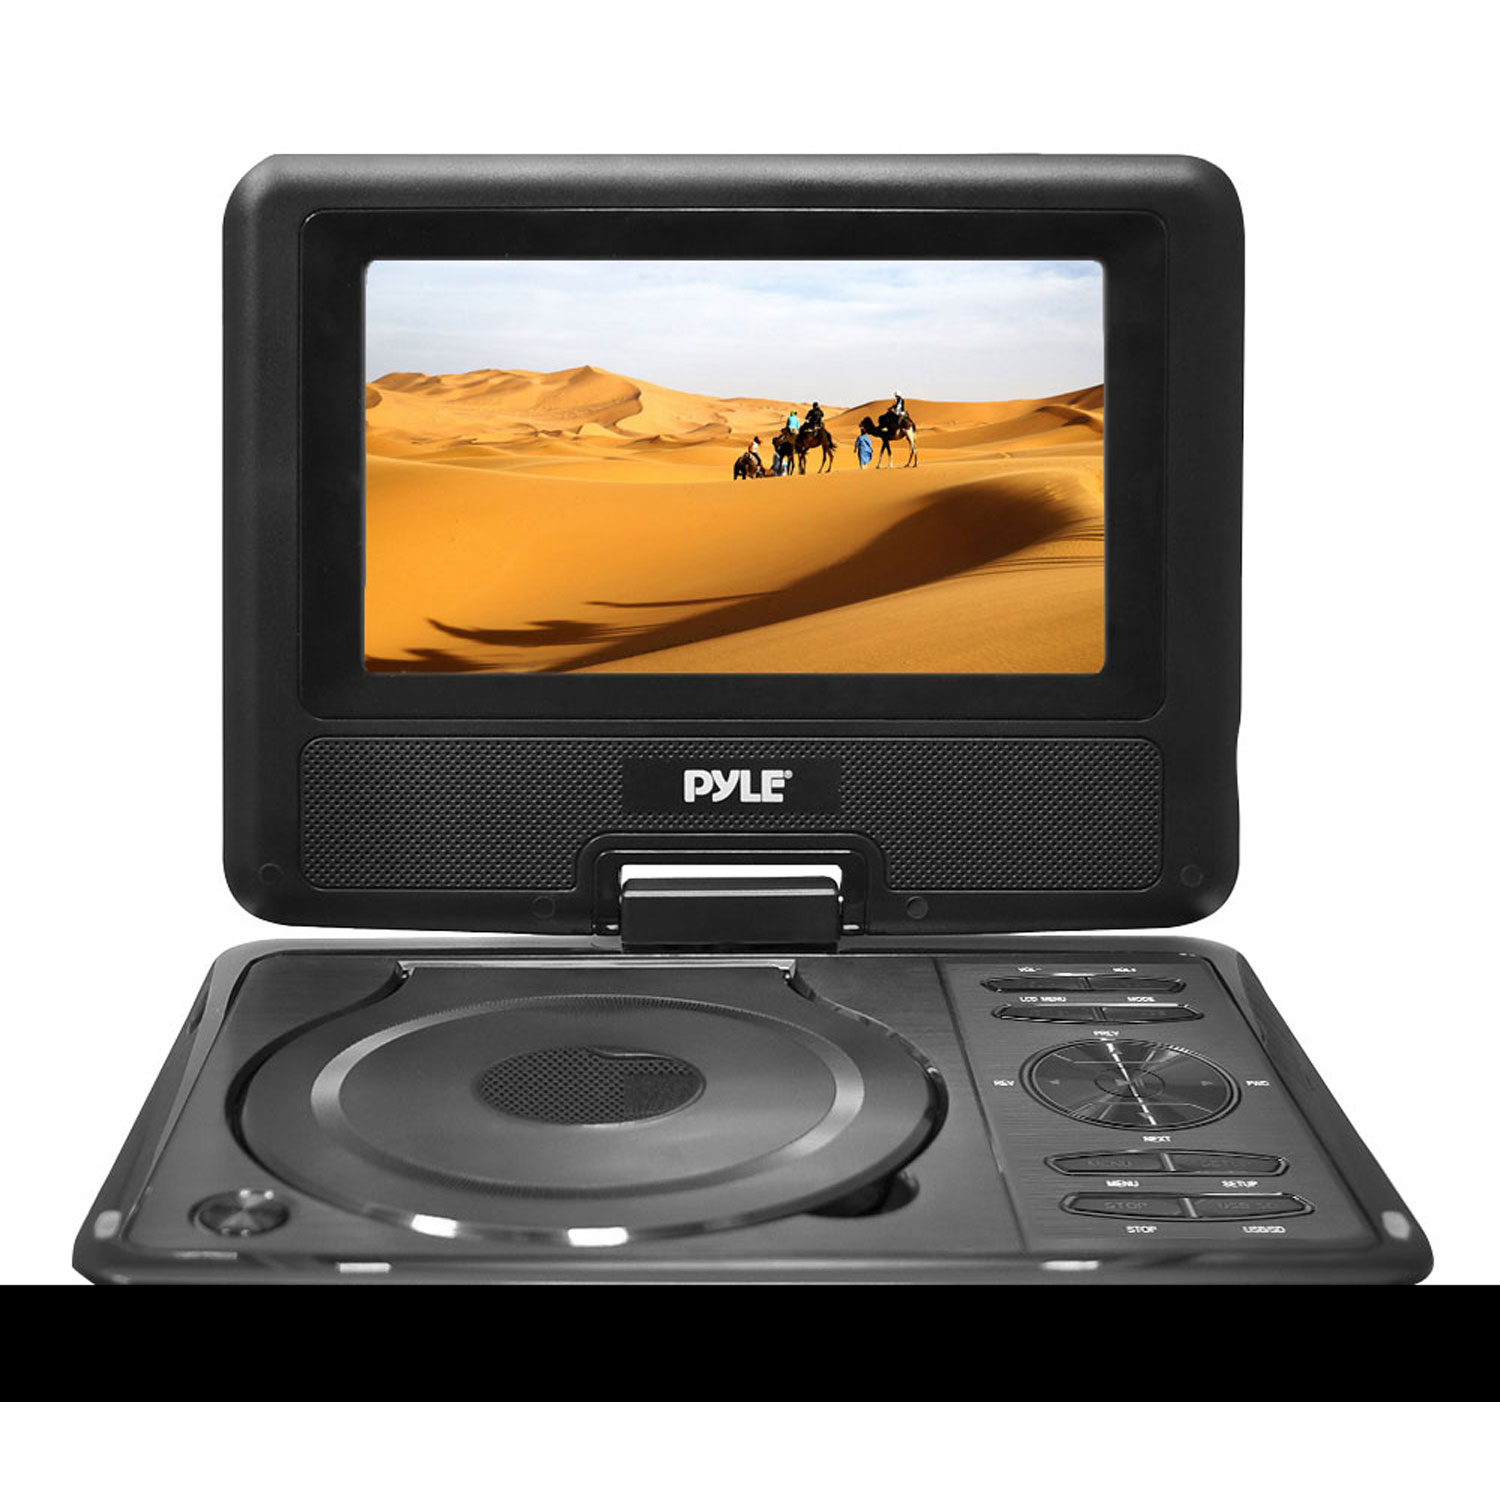 """Pyle 9"""" Widescreen High Resolution Portable Monitor w/ Built-In DVD, MP3, MP4 Players, USB Port & SD Card Slot Readers"""